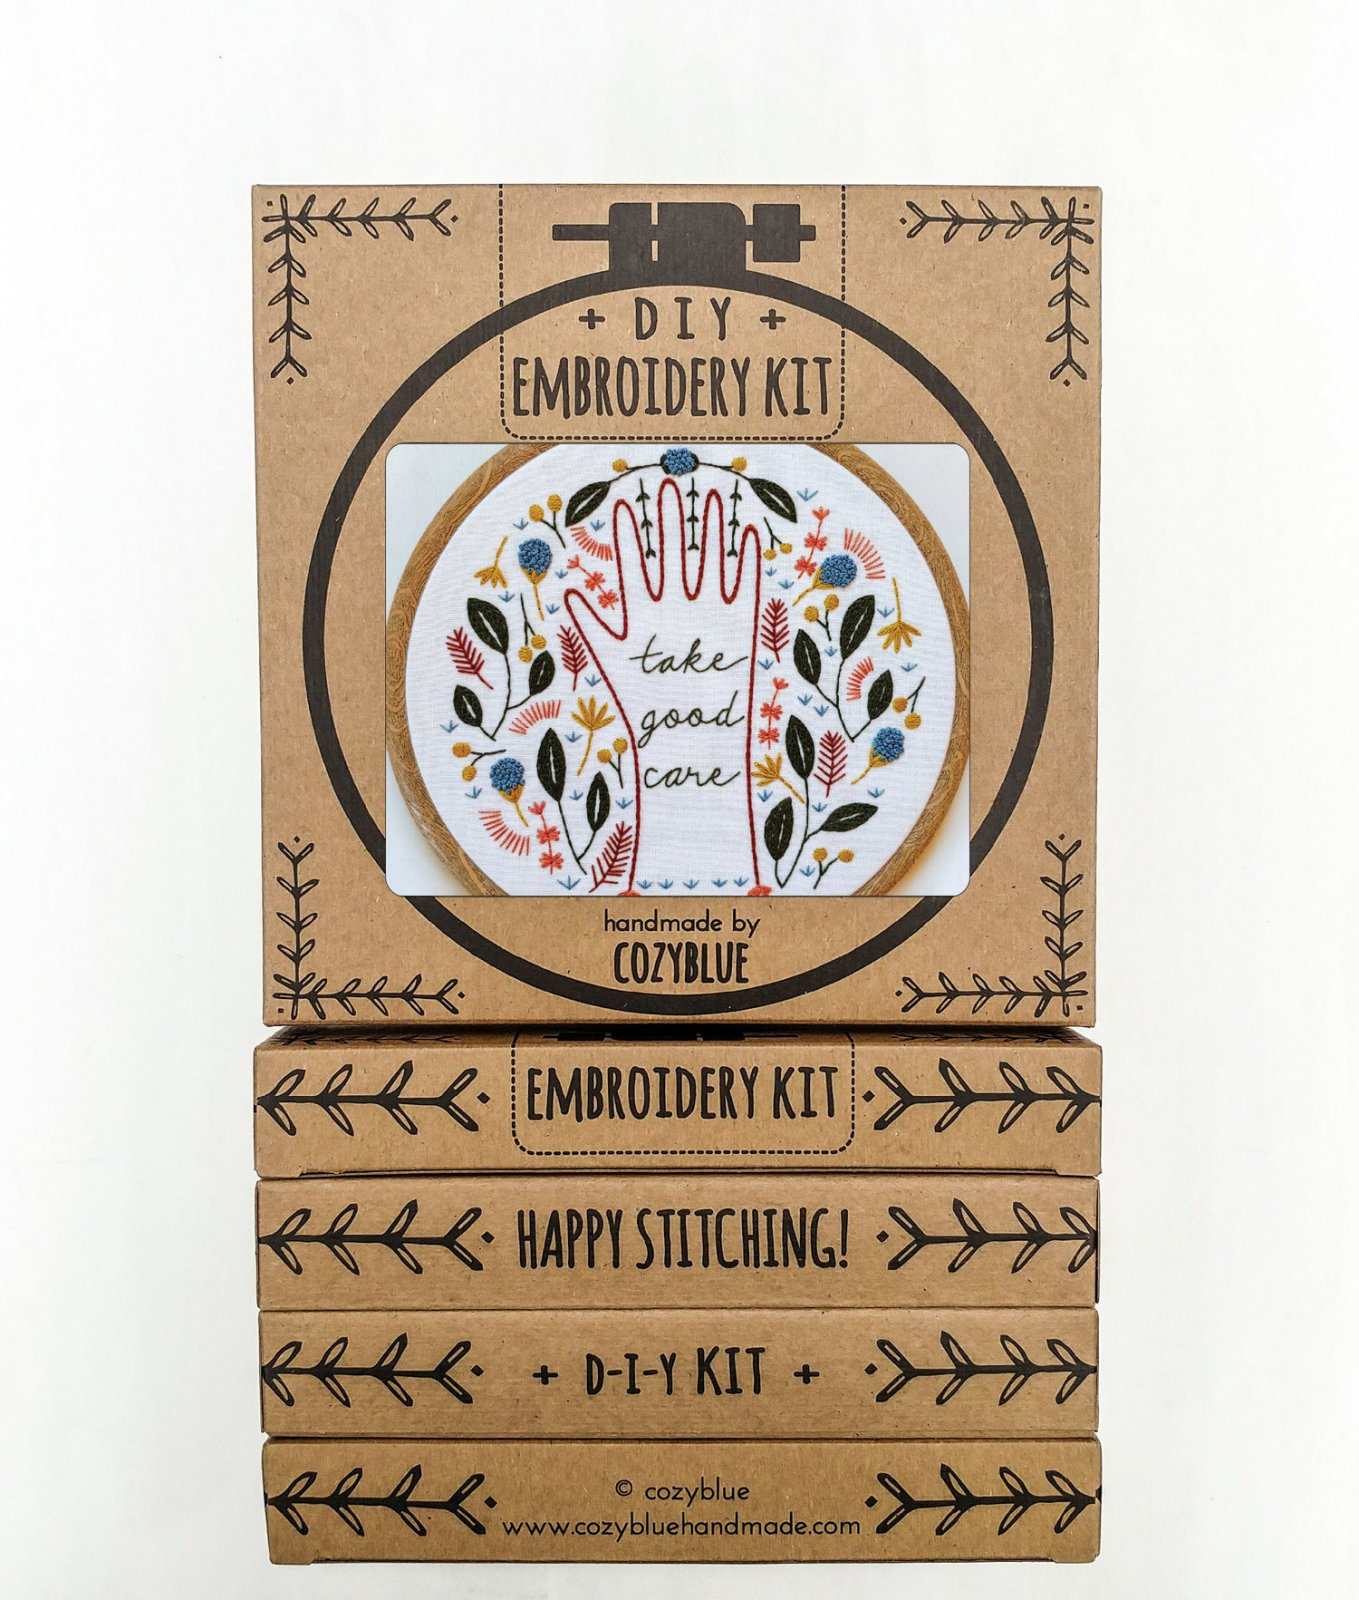 Take Good Care Embroidery Kit